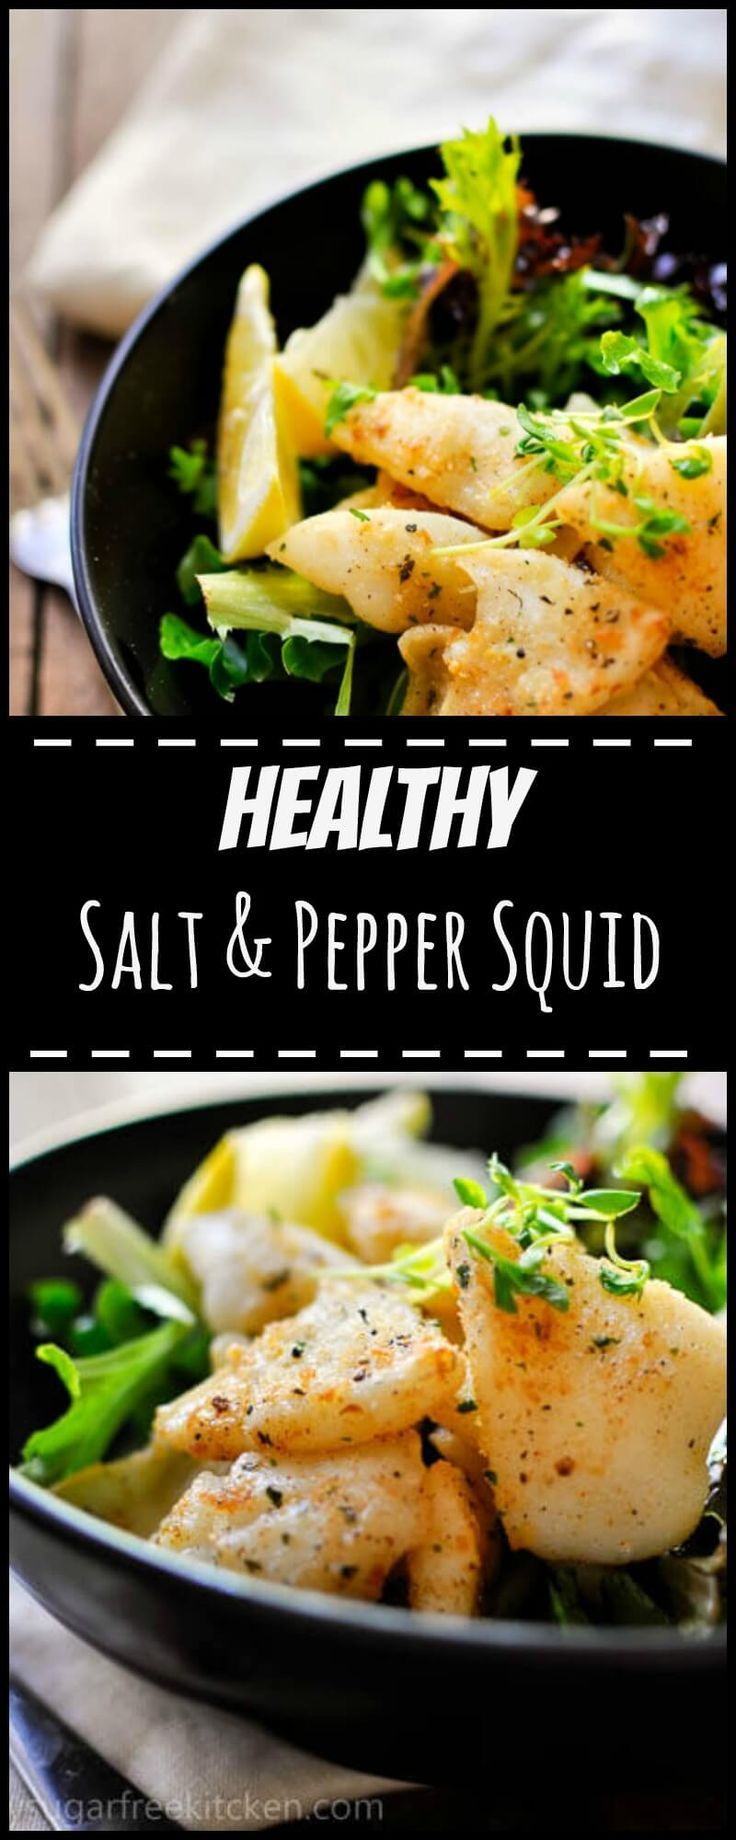 This healthy salt and pepper squid recipe is light, crispy and incredibly tender.  This is the perfect lunch for sharing with friends over a glass of wine!